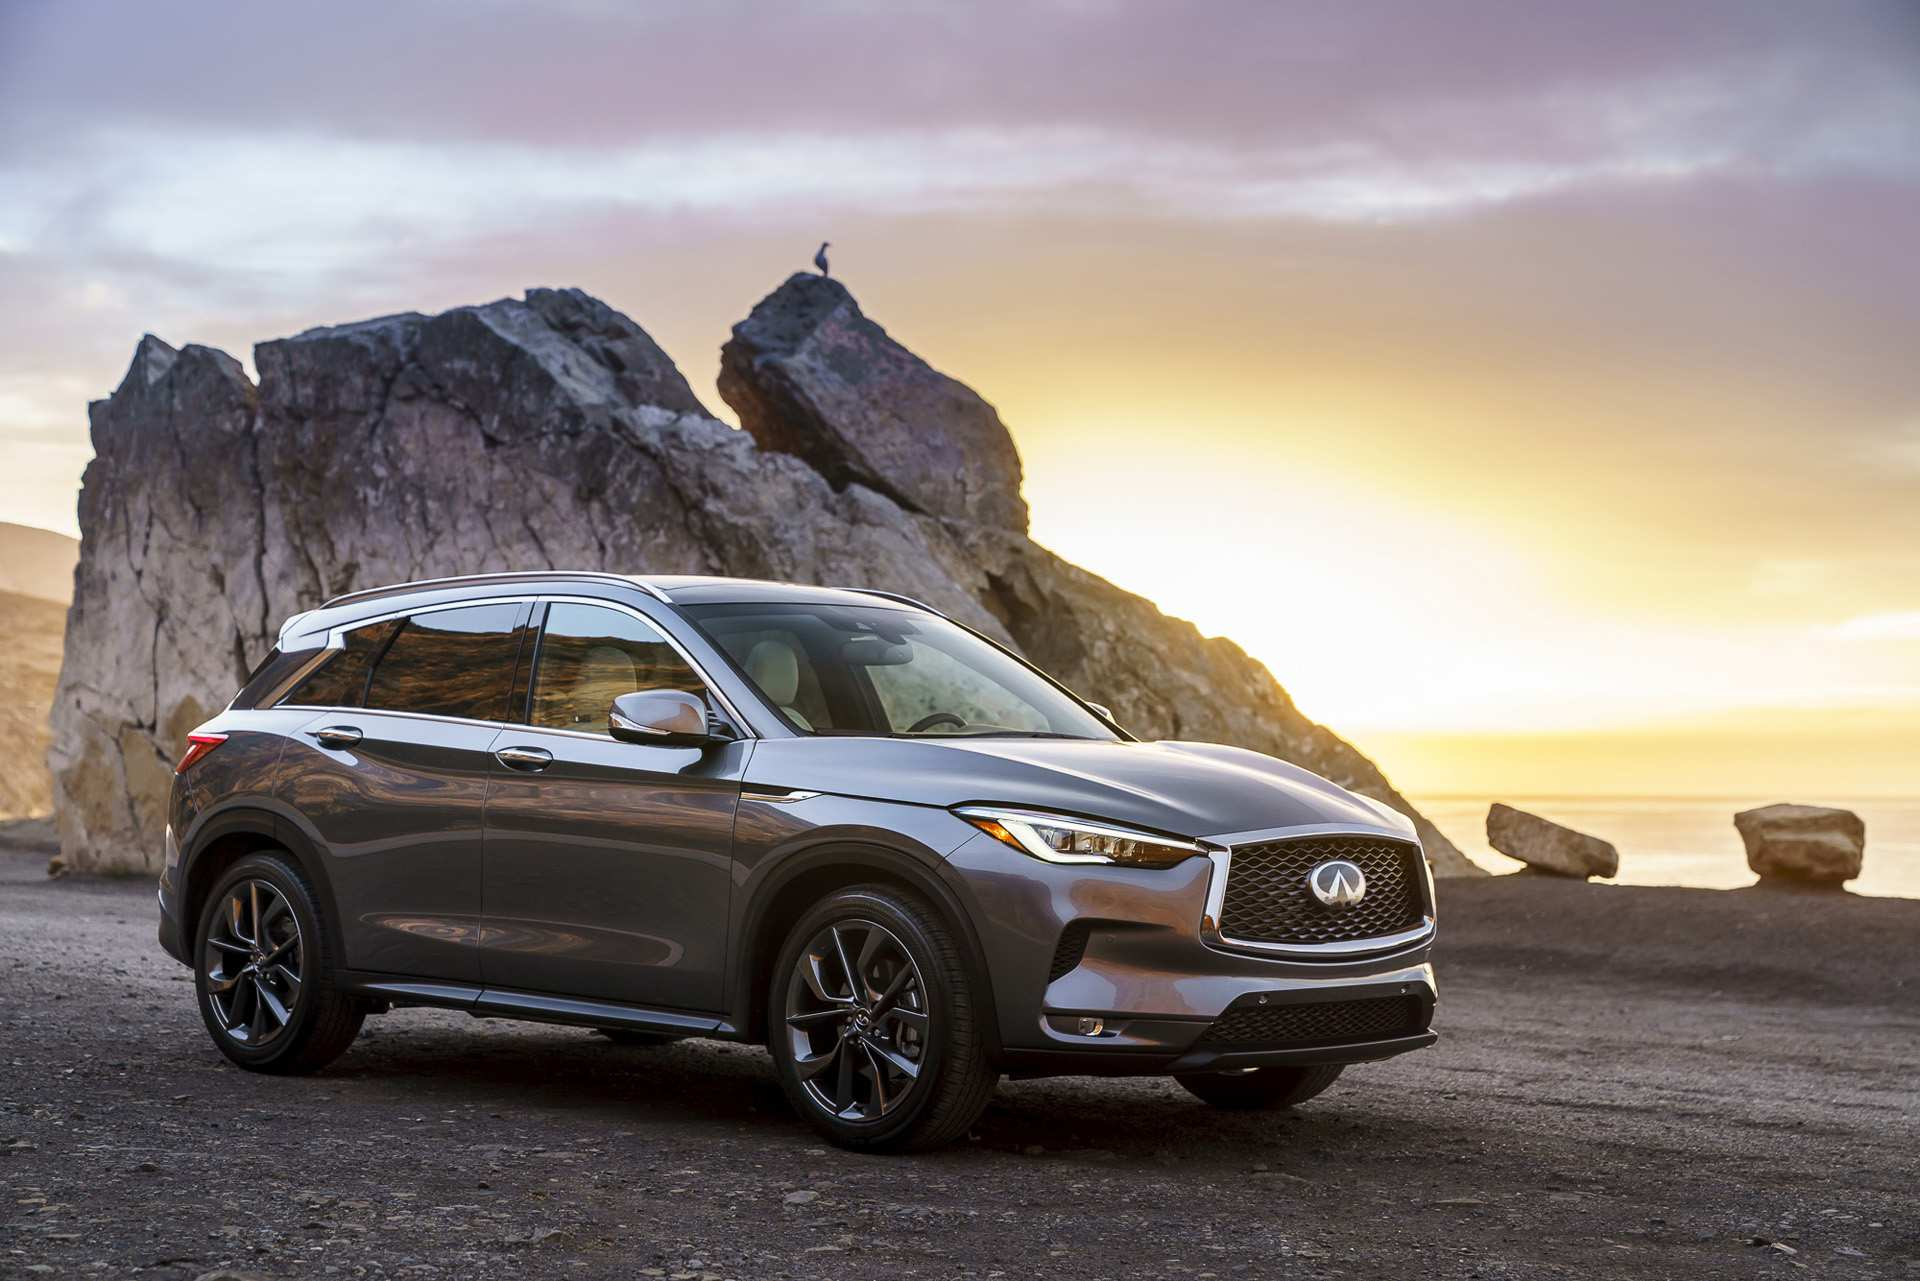 70 All New 2019 Infiniti Qx50 Dimensions Redesign And Concept